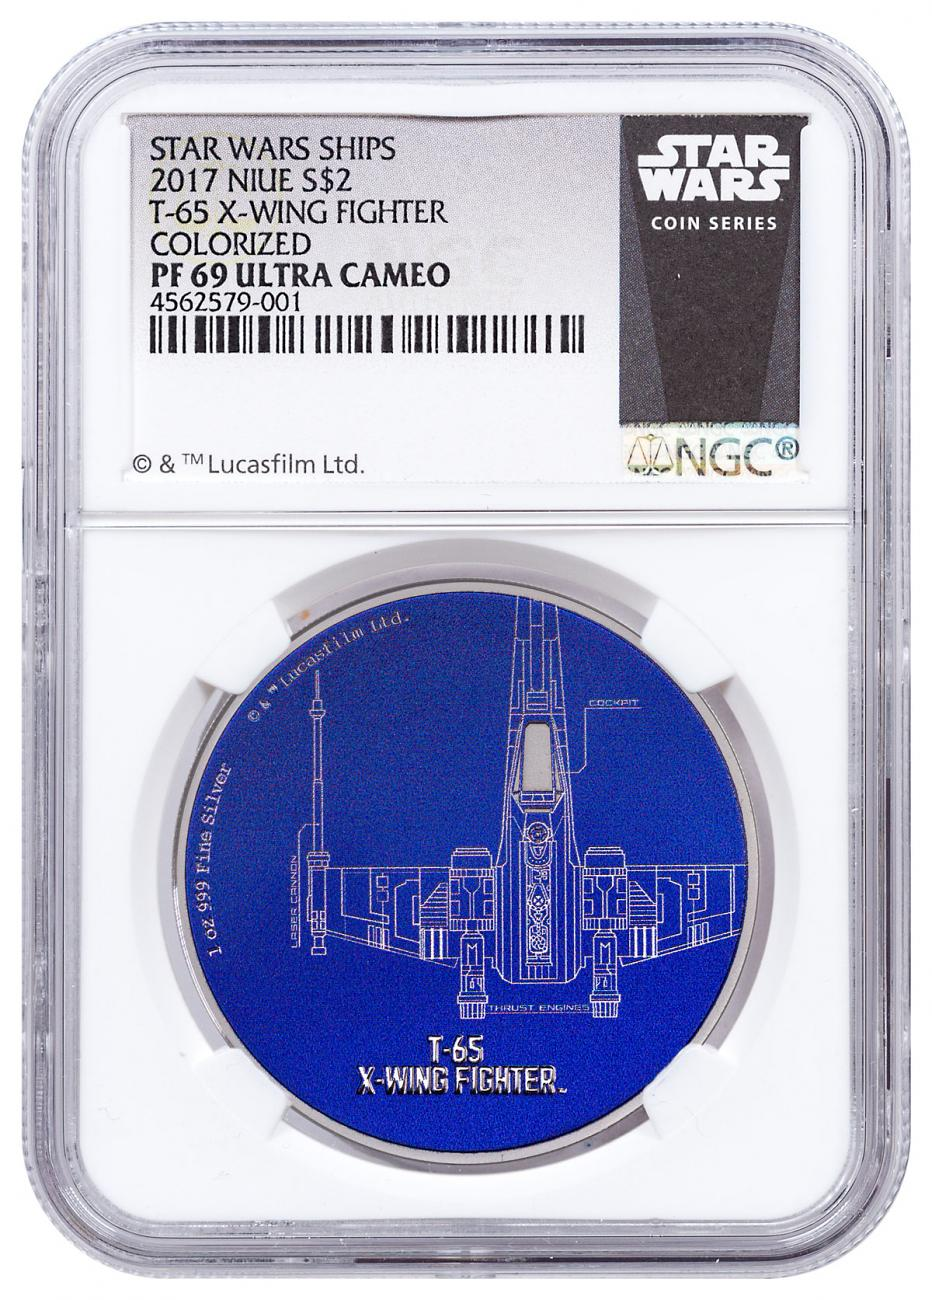 2017 Niue Star Wars Ships - T-65 X-Wing Fighter 1 oz Silver Colorized Proof $2 Coin NGC PF69 UC Exclusive Star Wars Label